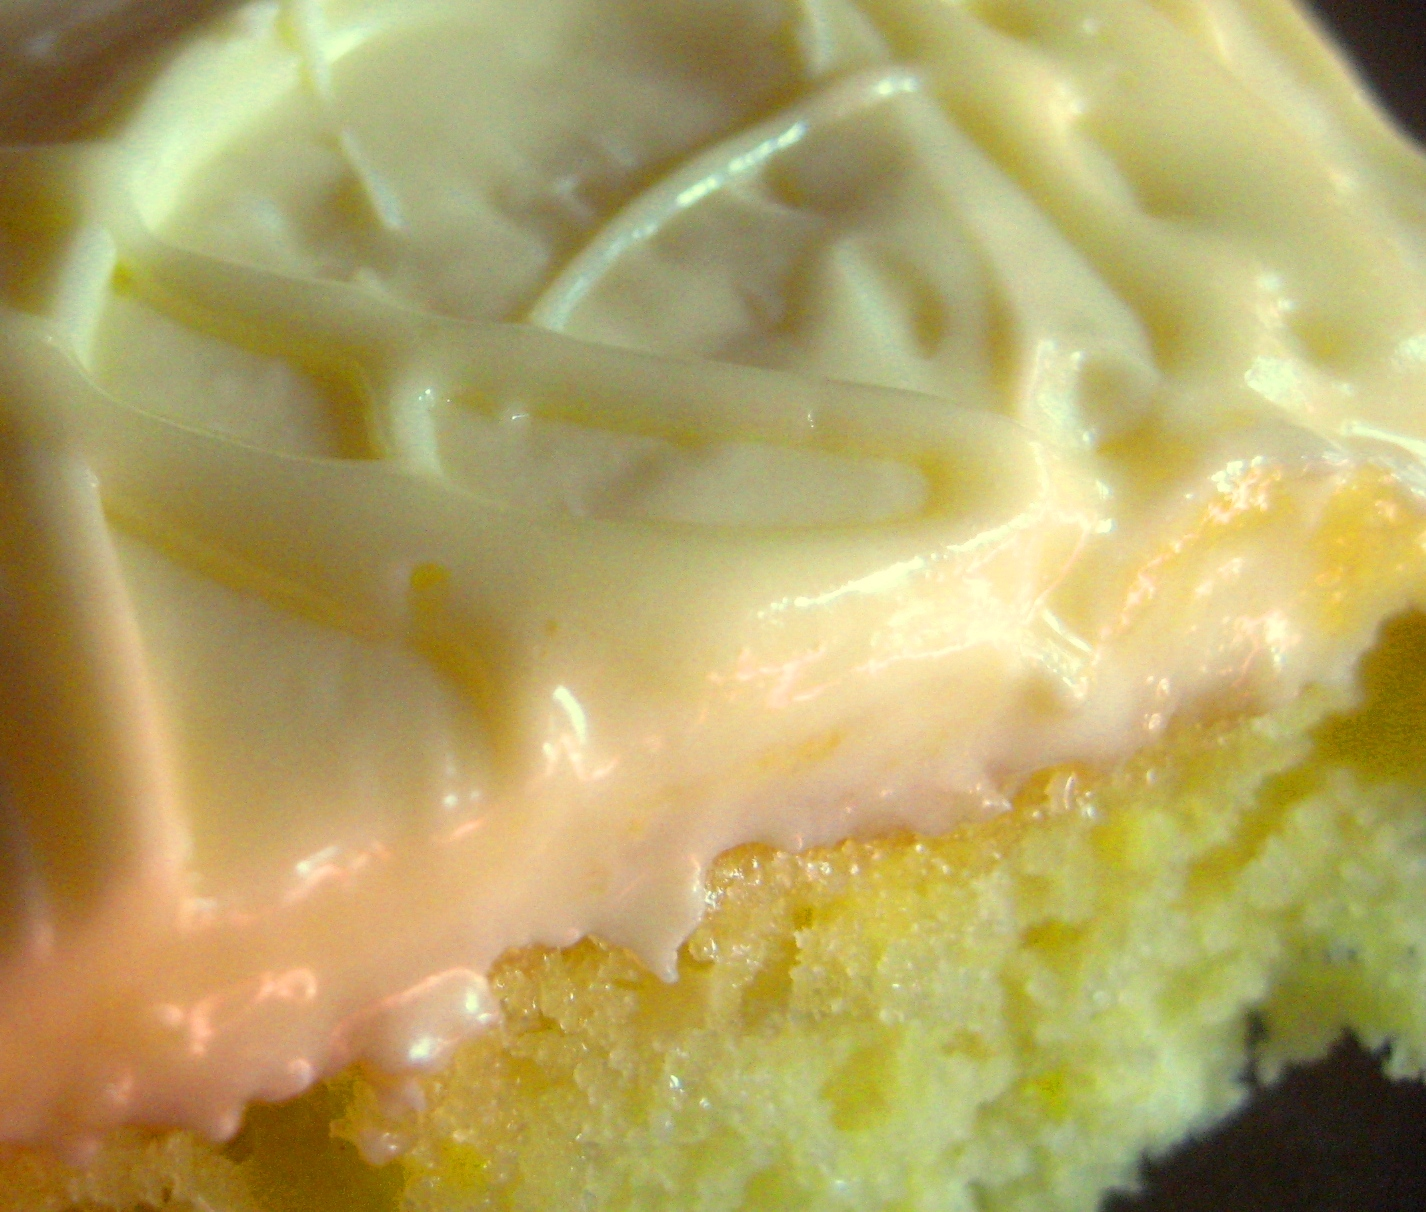 My Homemade Life: LEMON DROP Cake Plus a Little Frosting Secret